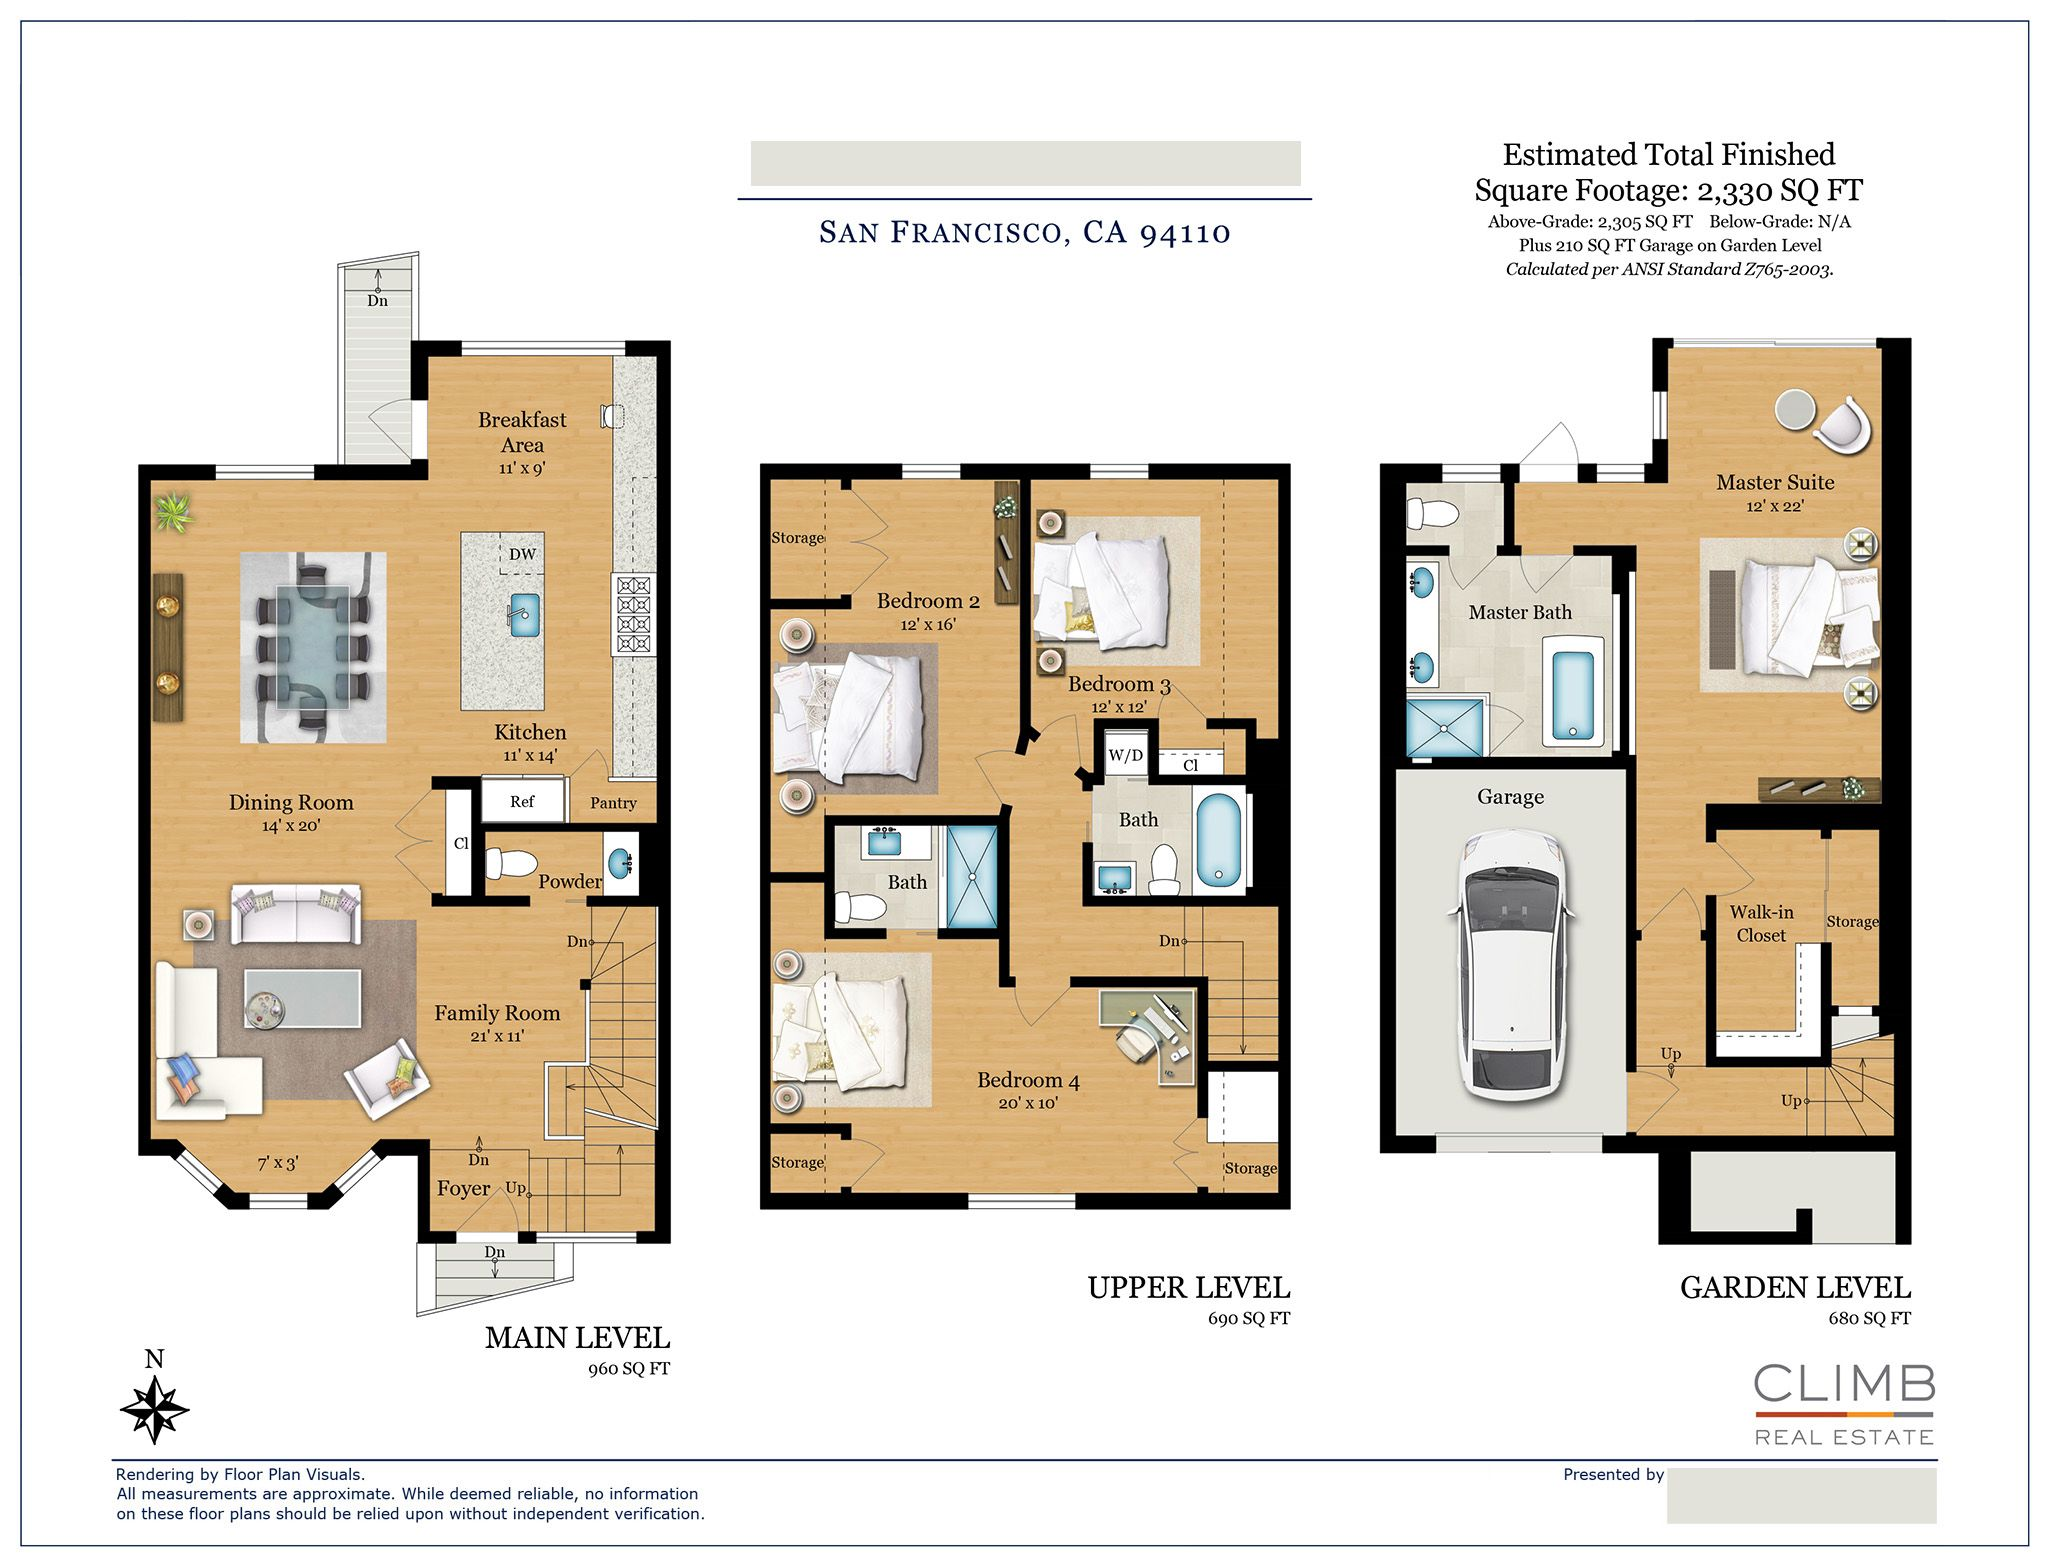 Location San Francisco Ca Property Type Townhouse Size 2 330 Sq Ft Order Co Floor Plans How To Plan Residential Architecture